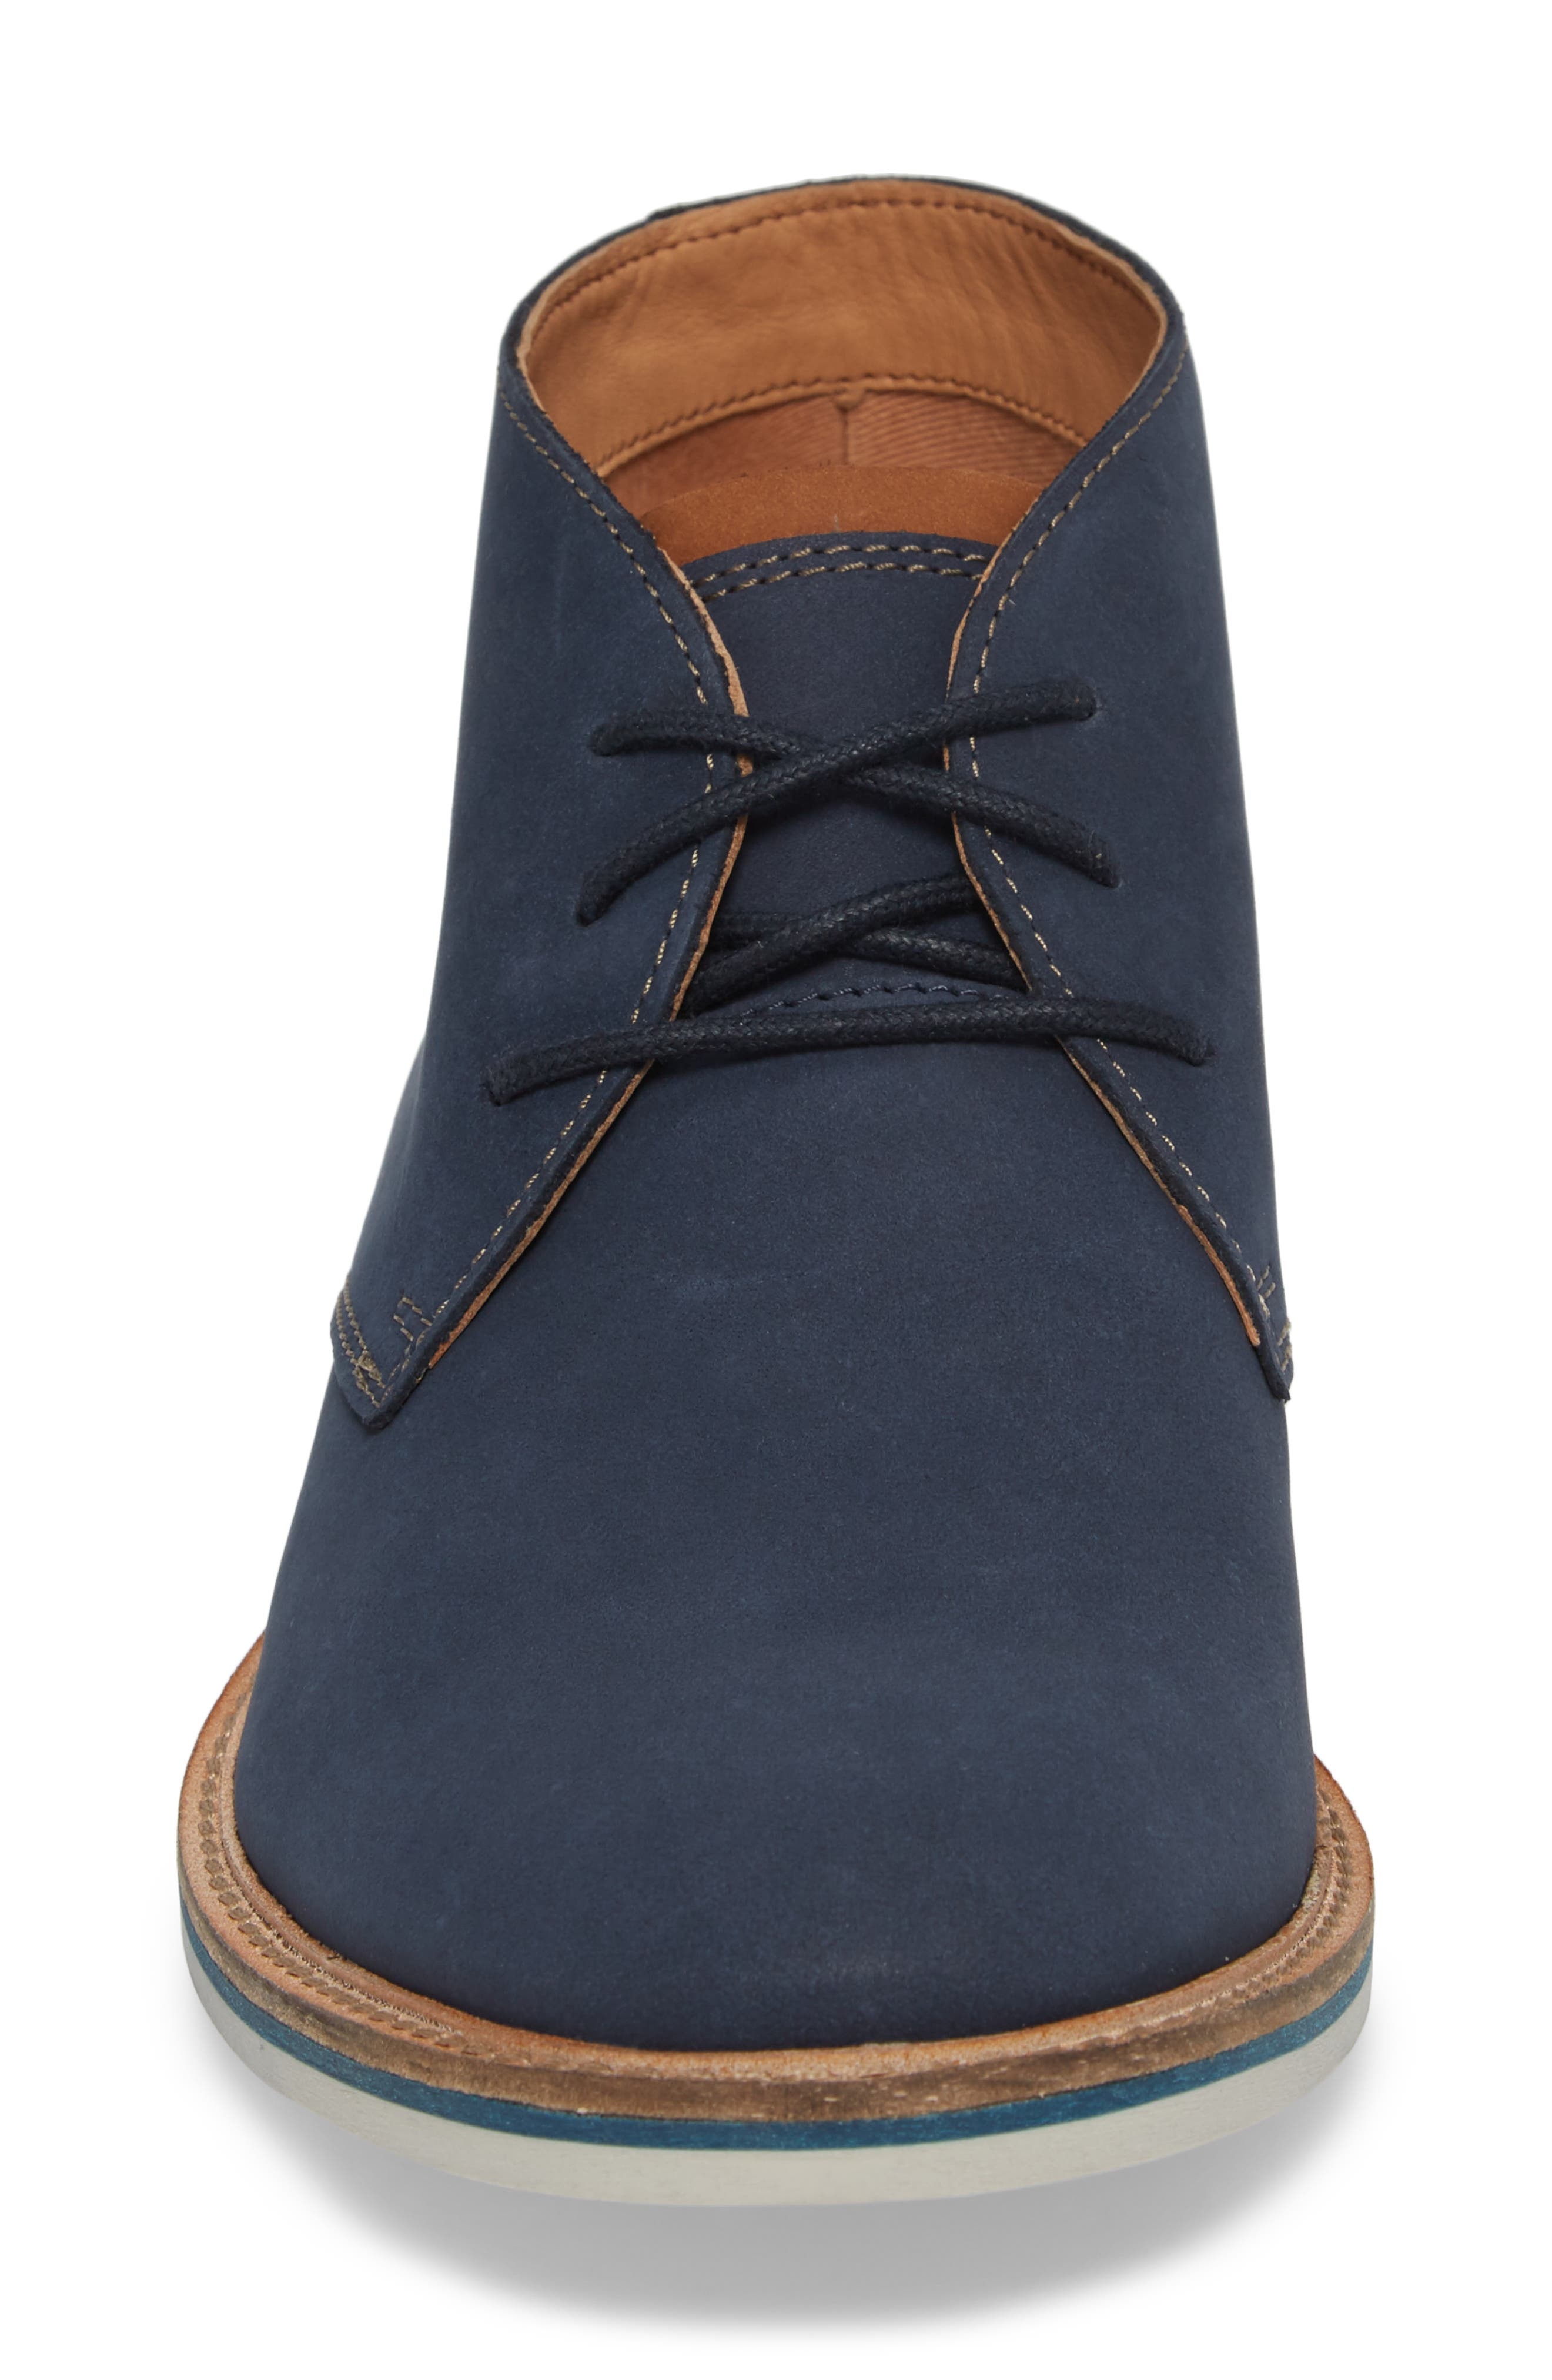 Clarks<sup>®</sup> Atticus Limit Chukka Boot,                             Alternate thumbnail 4, color,                             Navy Nubuck